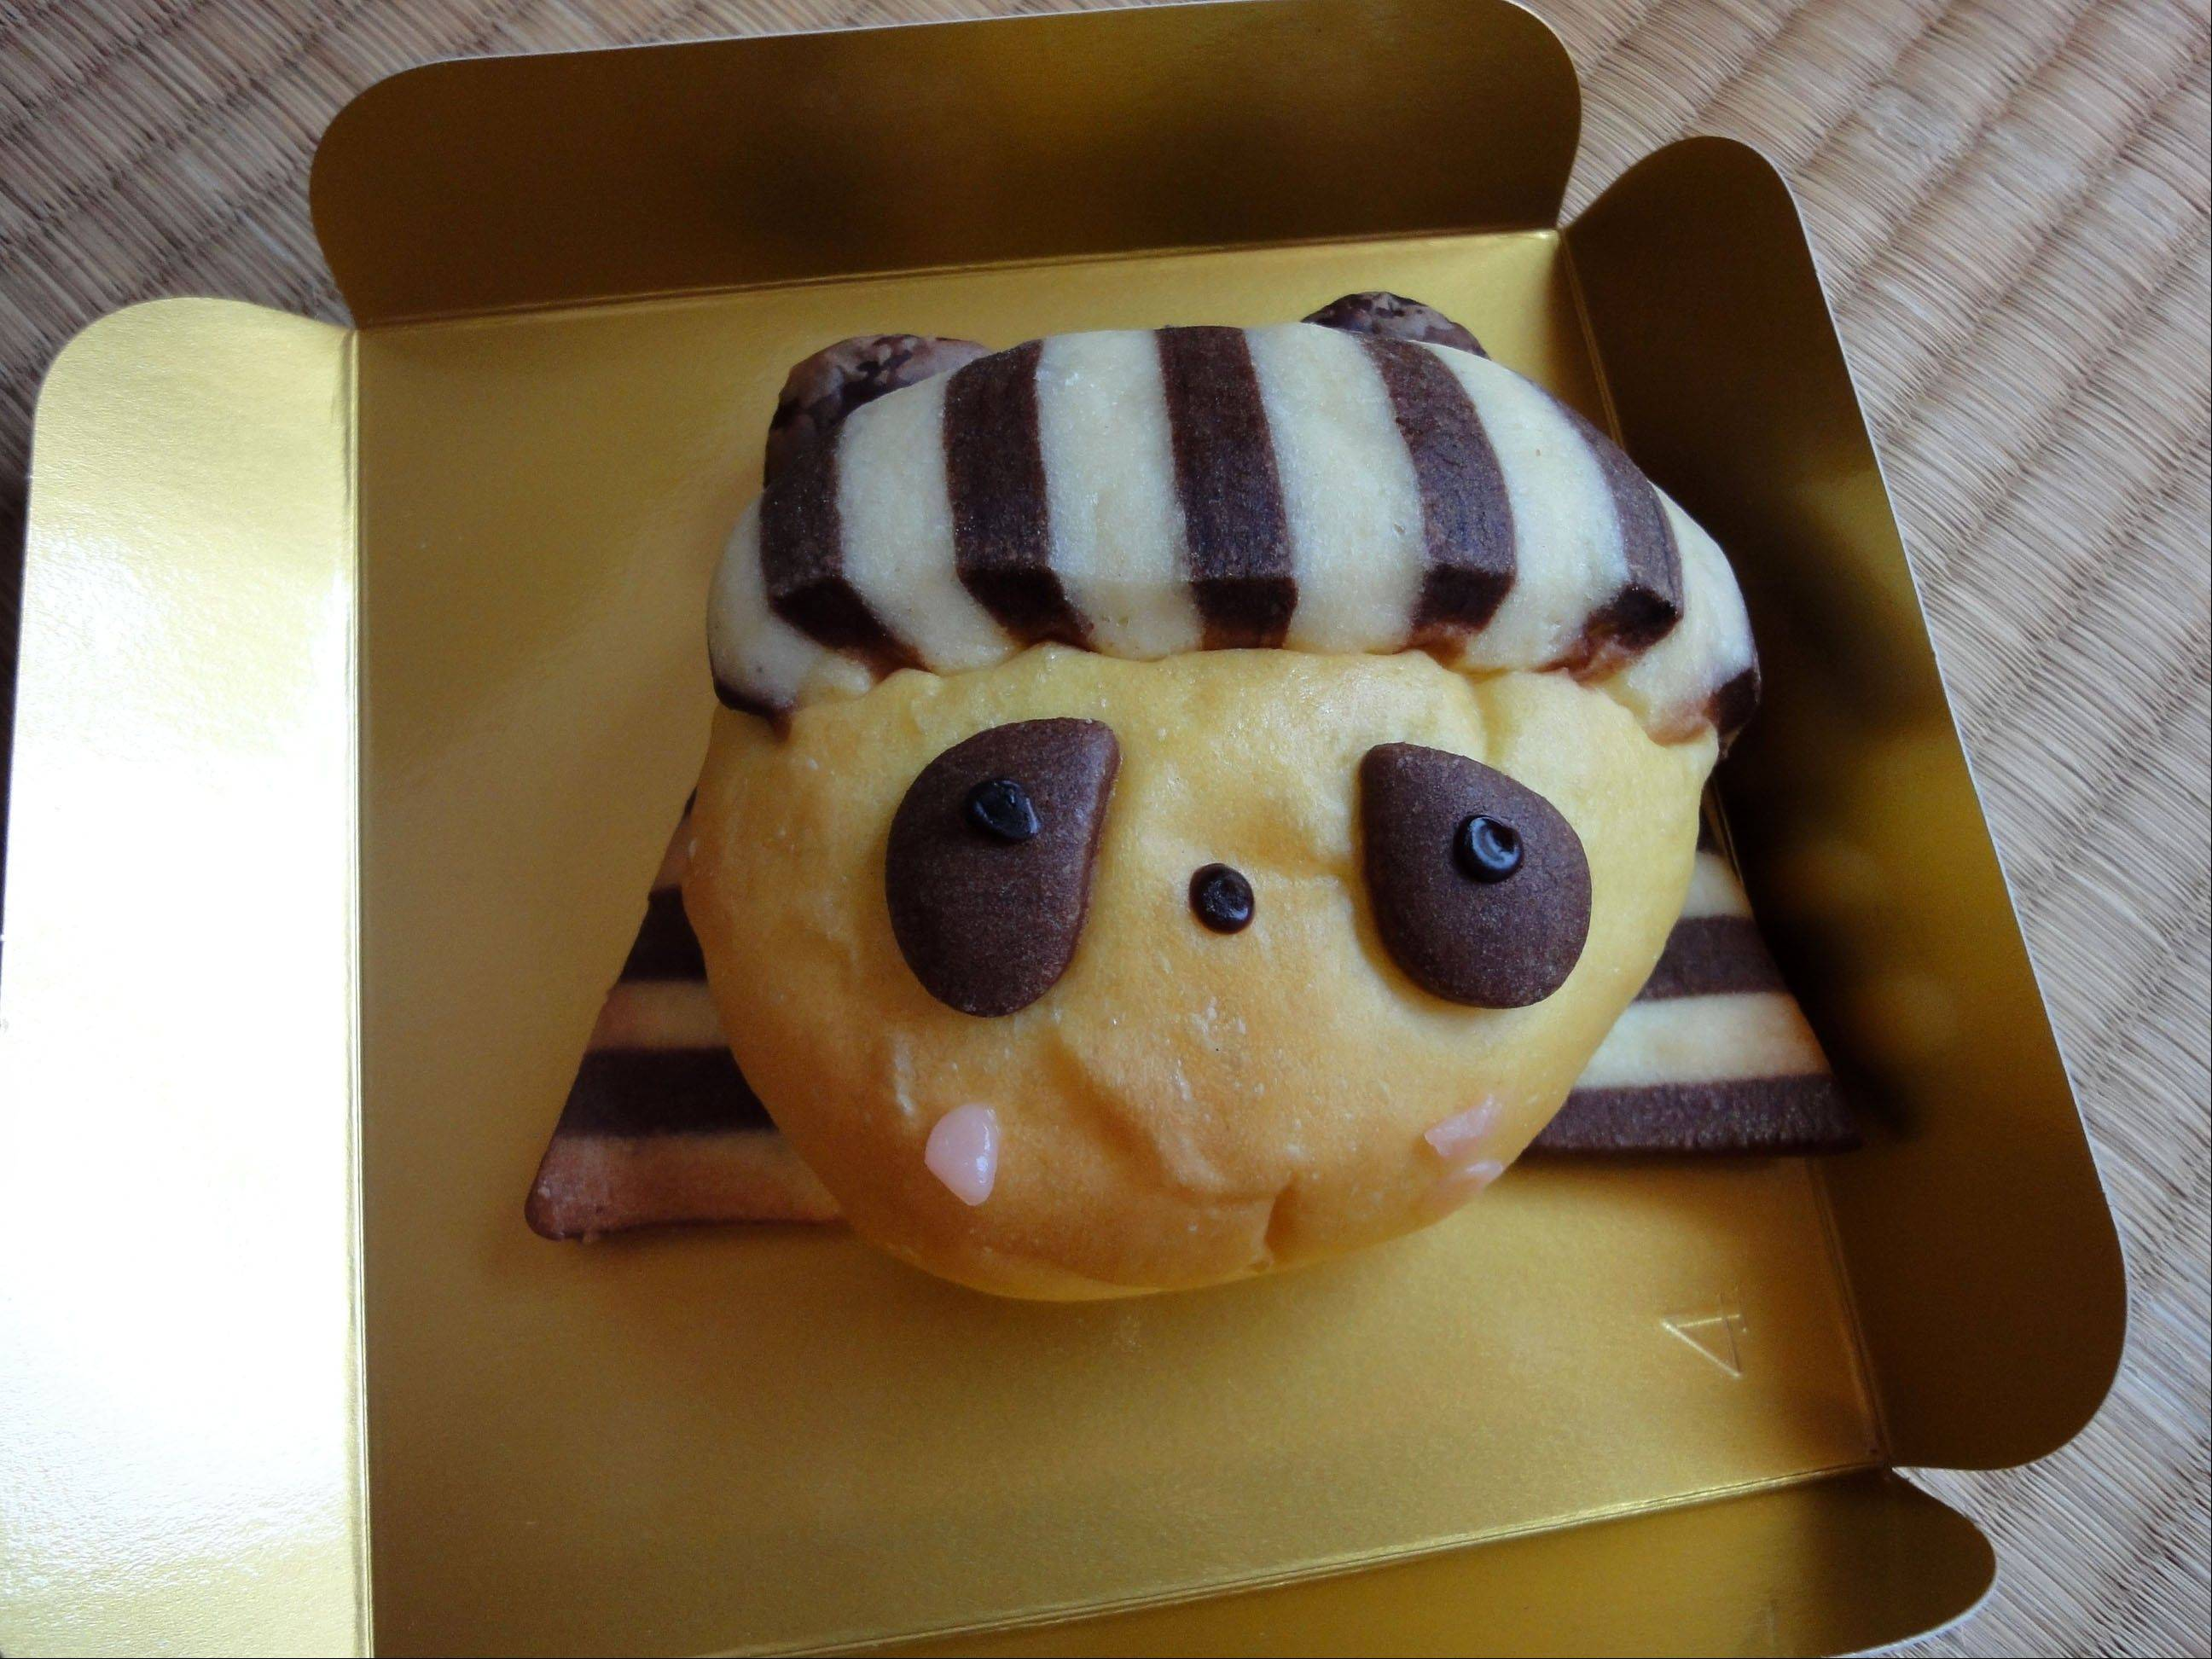 A bun sold at a bakery in Tokyo's Ueno train station is designed like a panda in honor of the panda at Tokyo's Ueno Zoo.